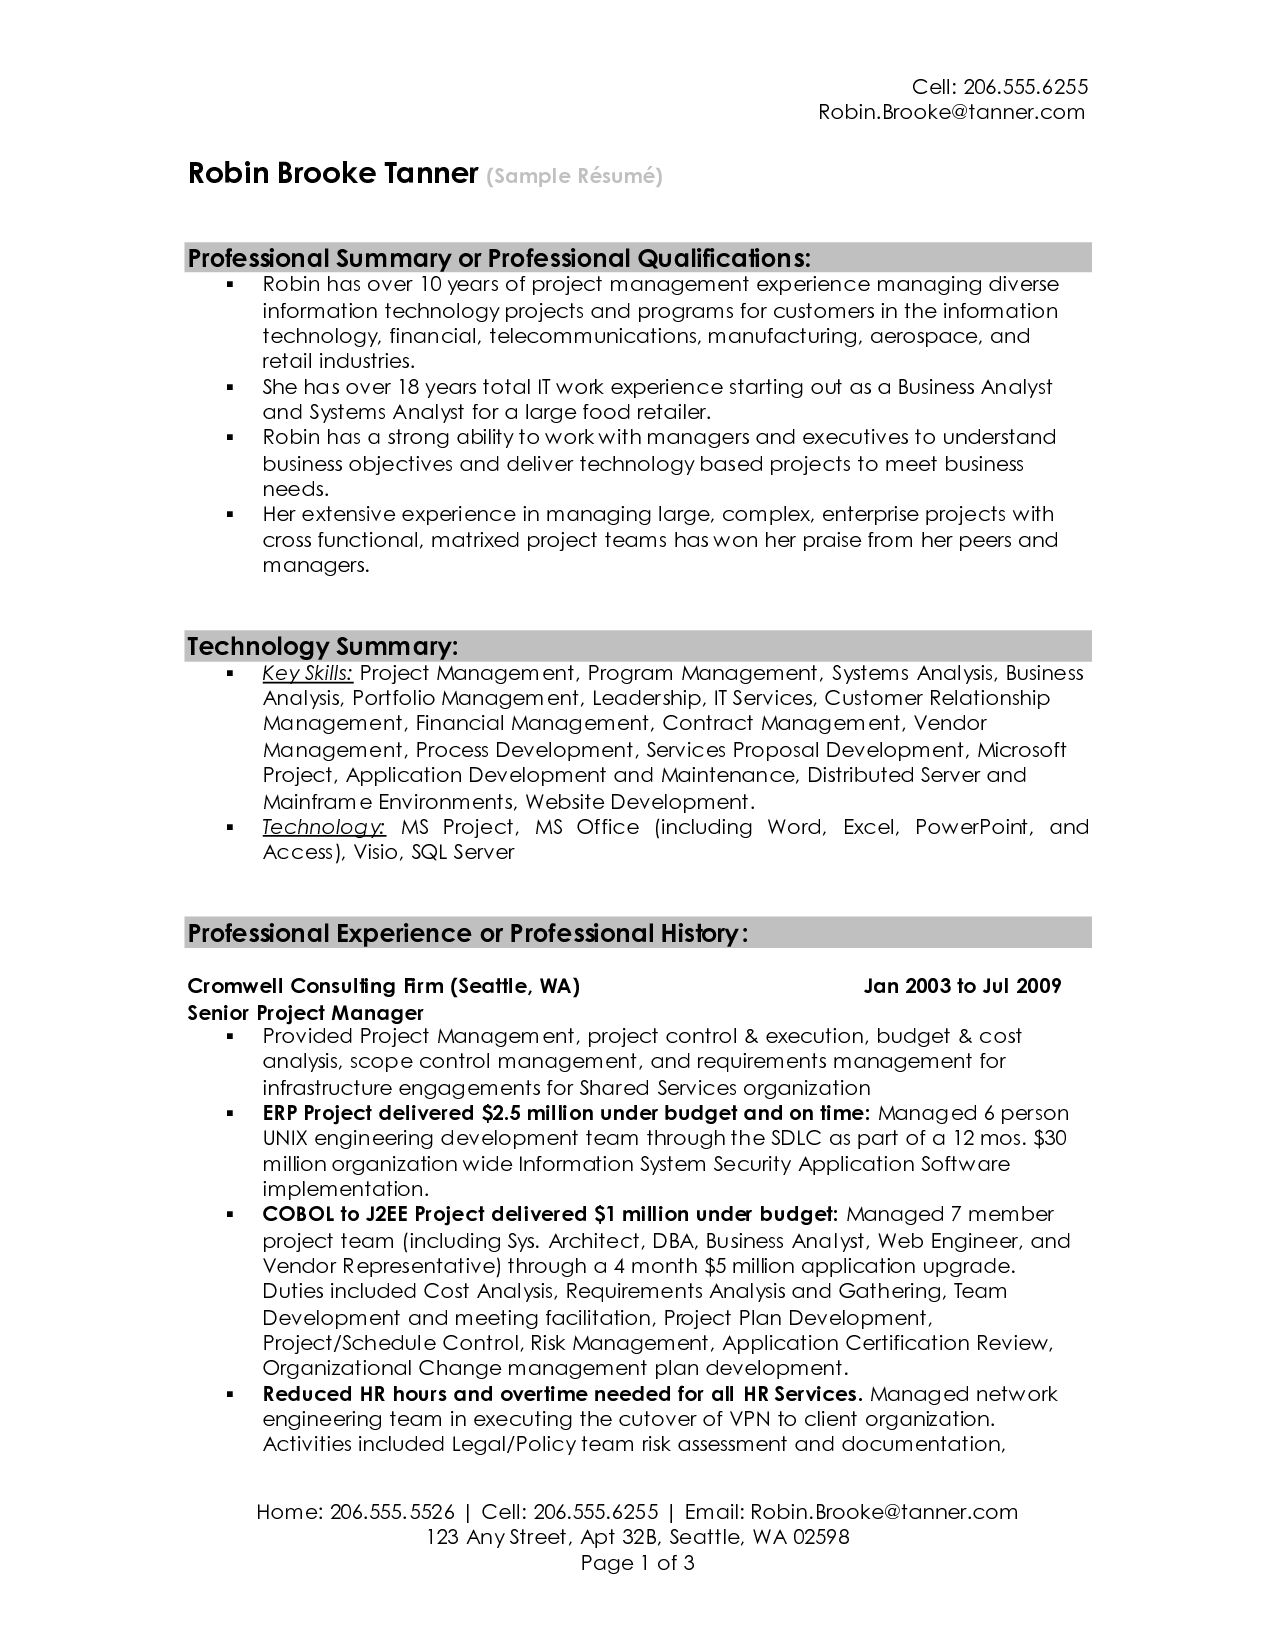 Resume Resume Examples Of Professional Summary professional summary resume examples 77e7fb28f